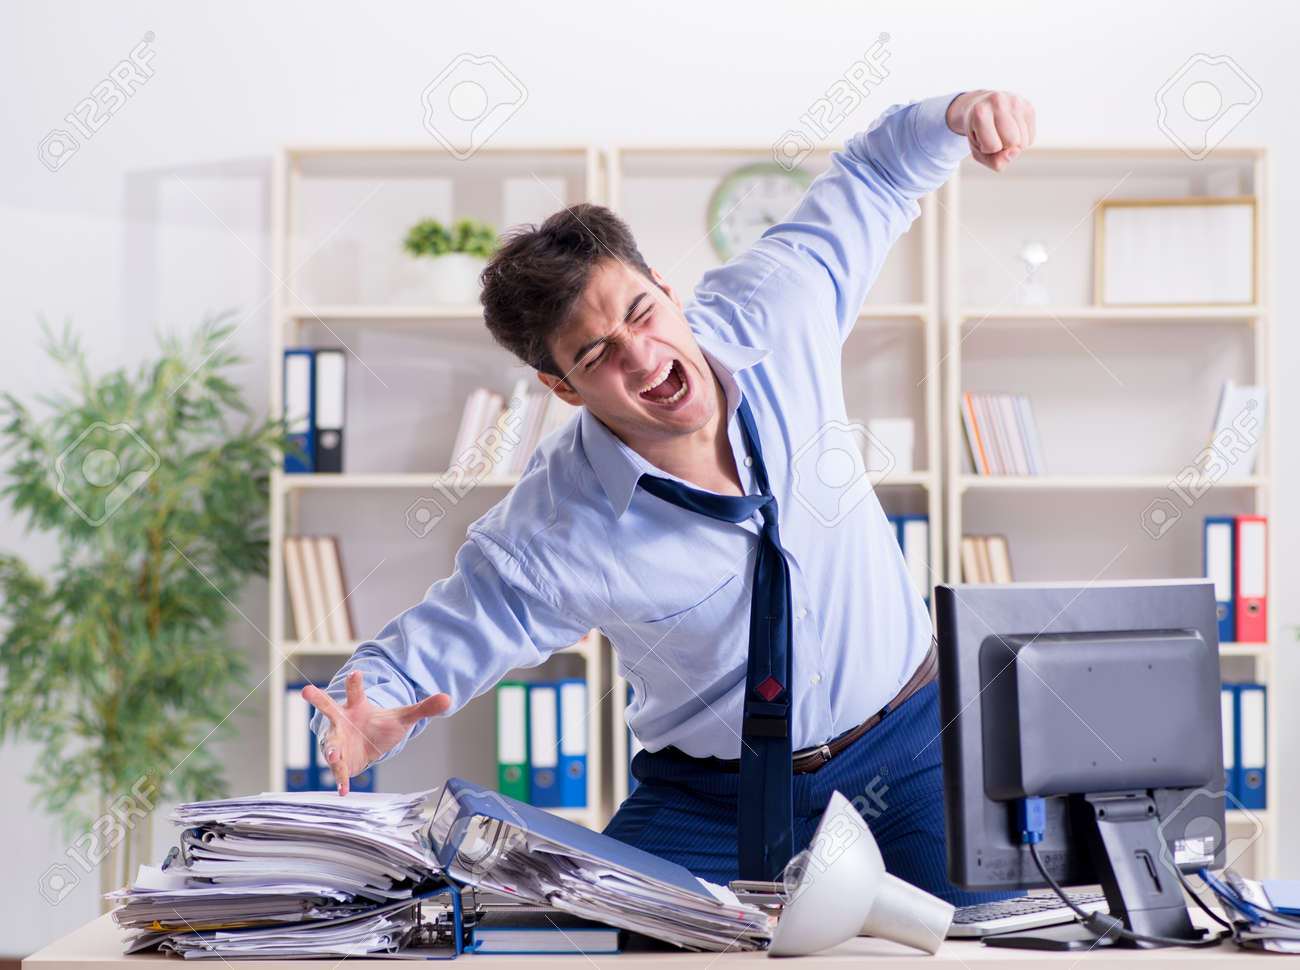 Angry businessman frustrated with too much work - 131877943